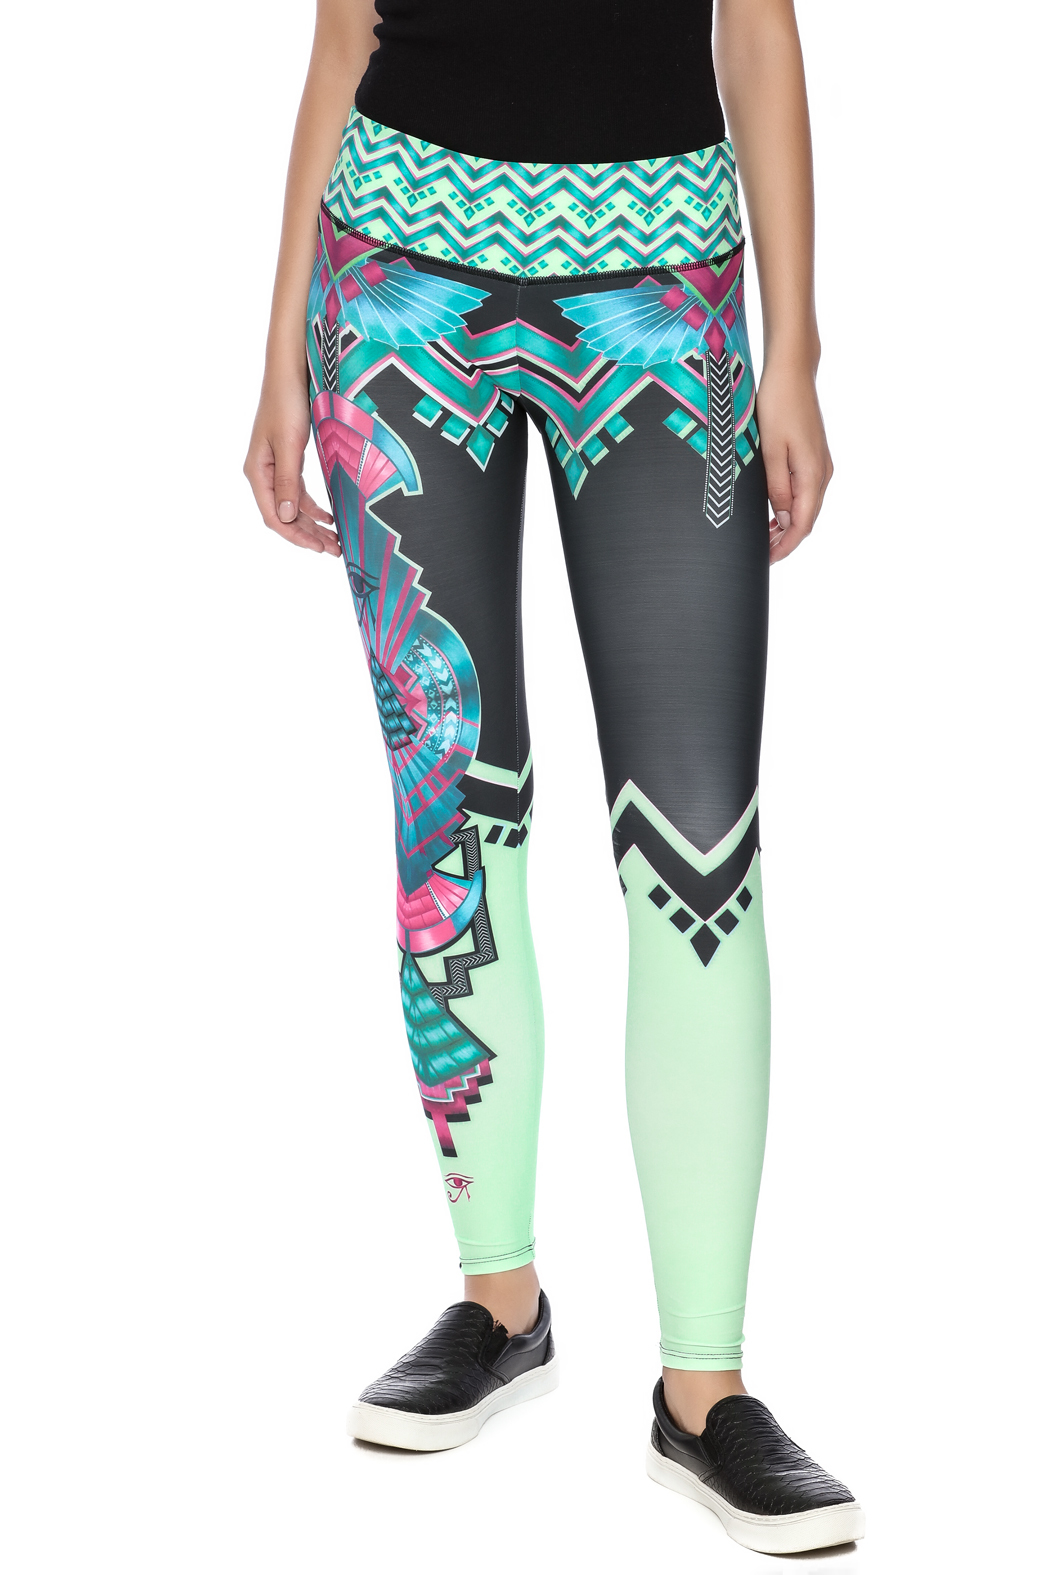 44fdf13a9e2216 Onzie Graphic Legging from Iowa by Namaste' Athleisure Wear — Shoptiques